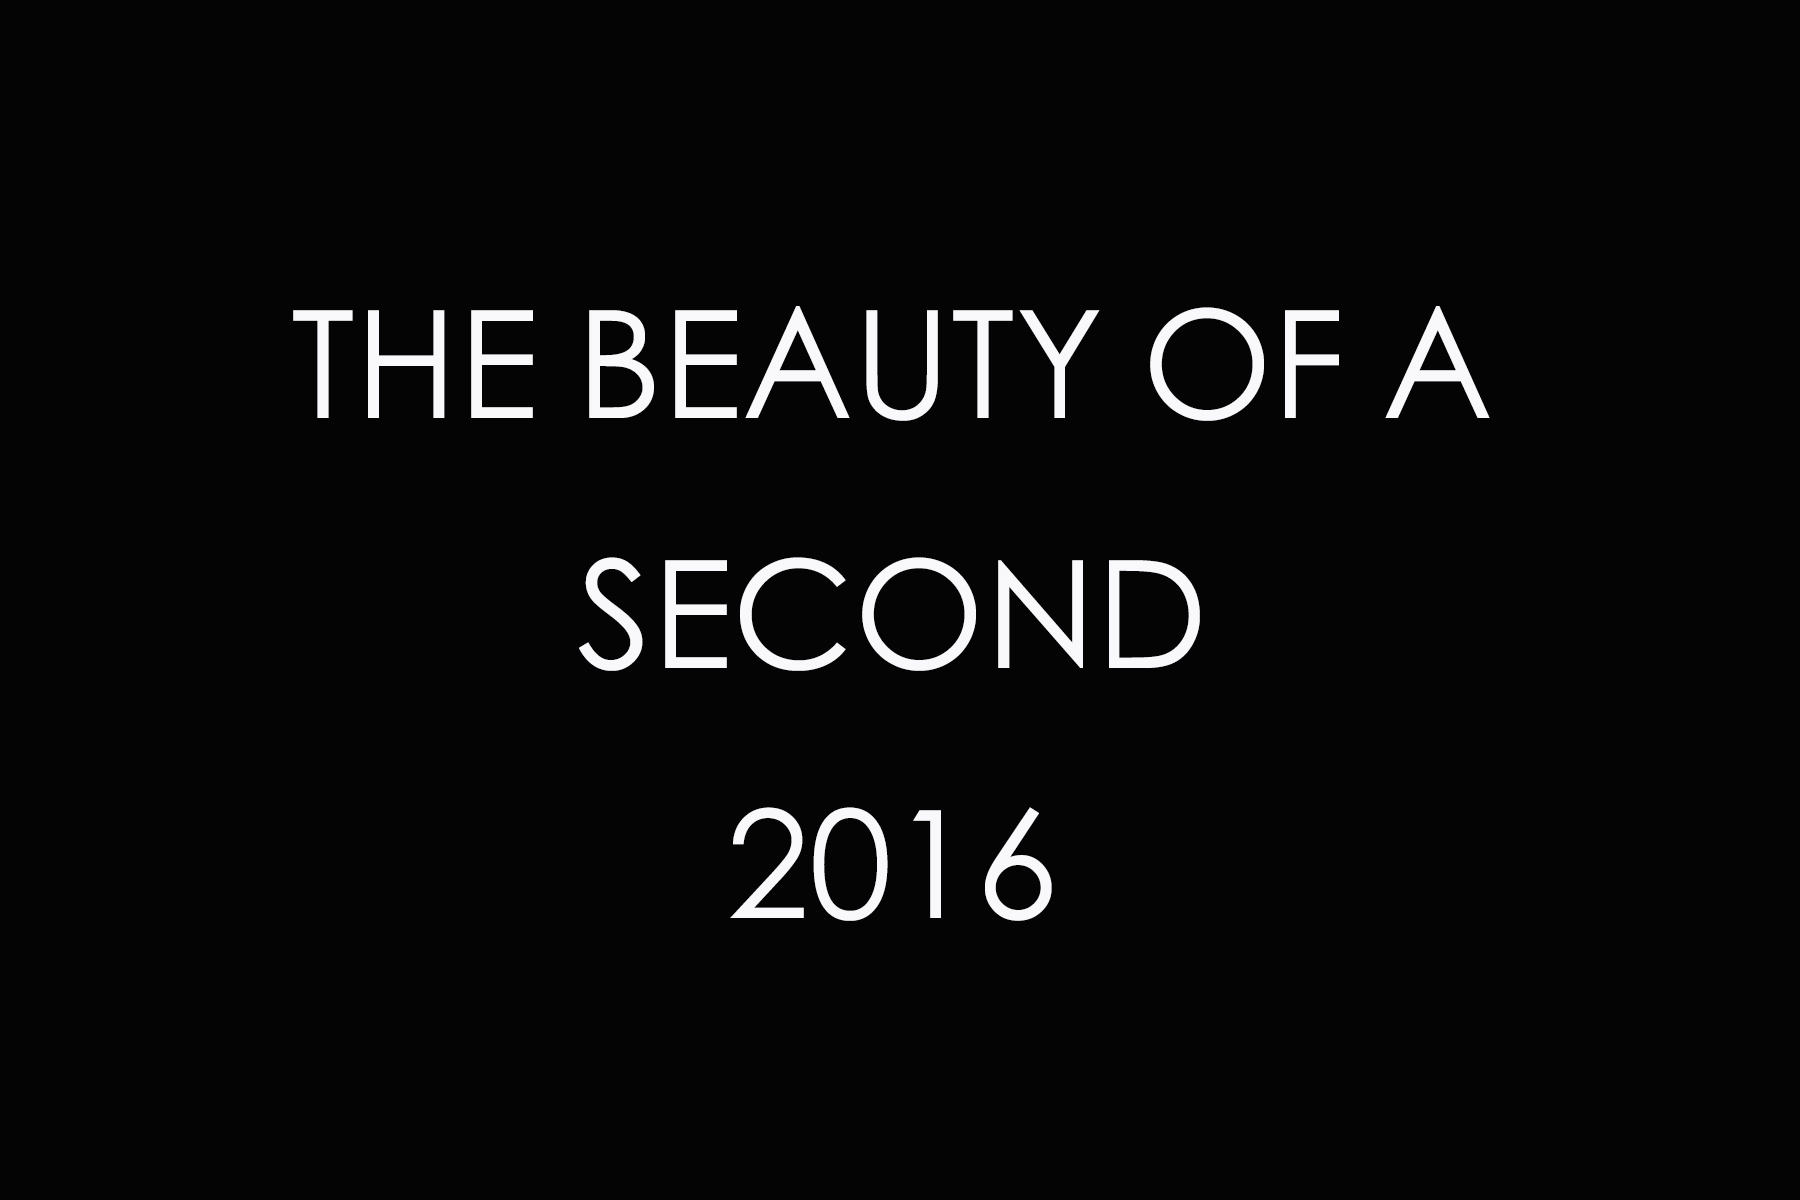 THE BEAUTY OF A SECOND -